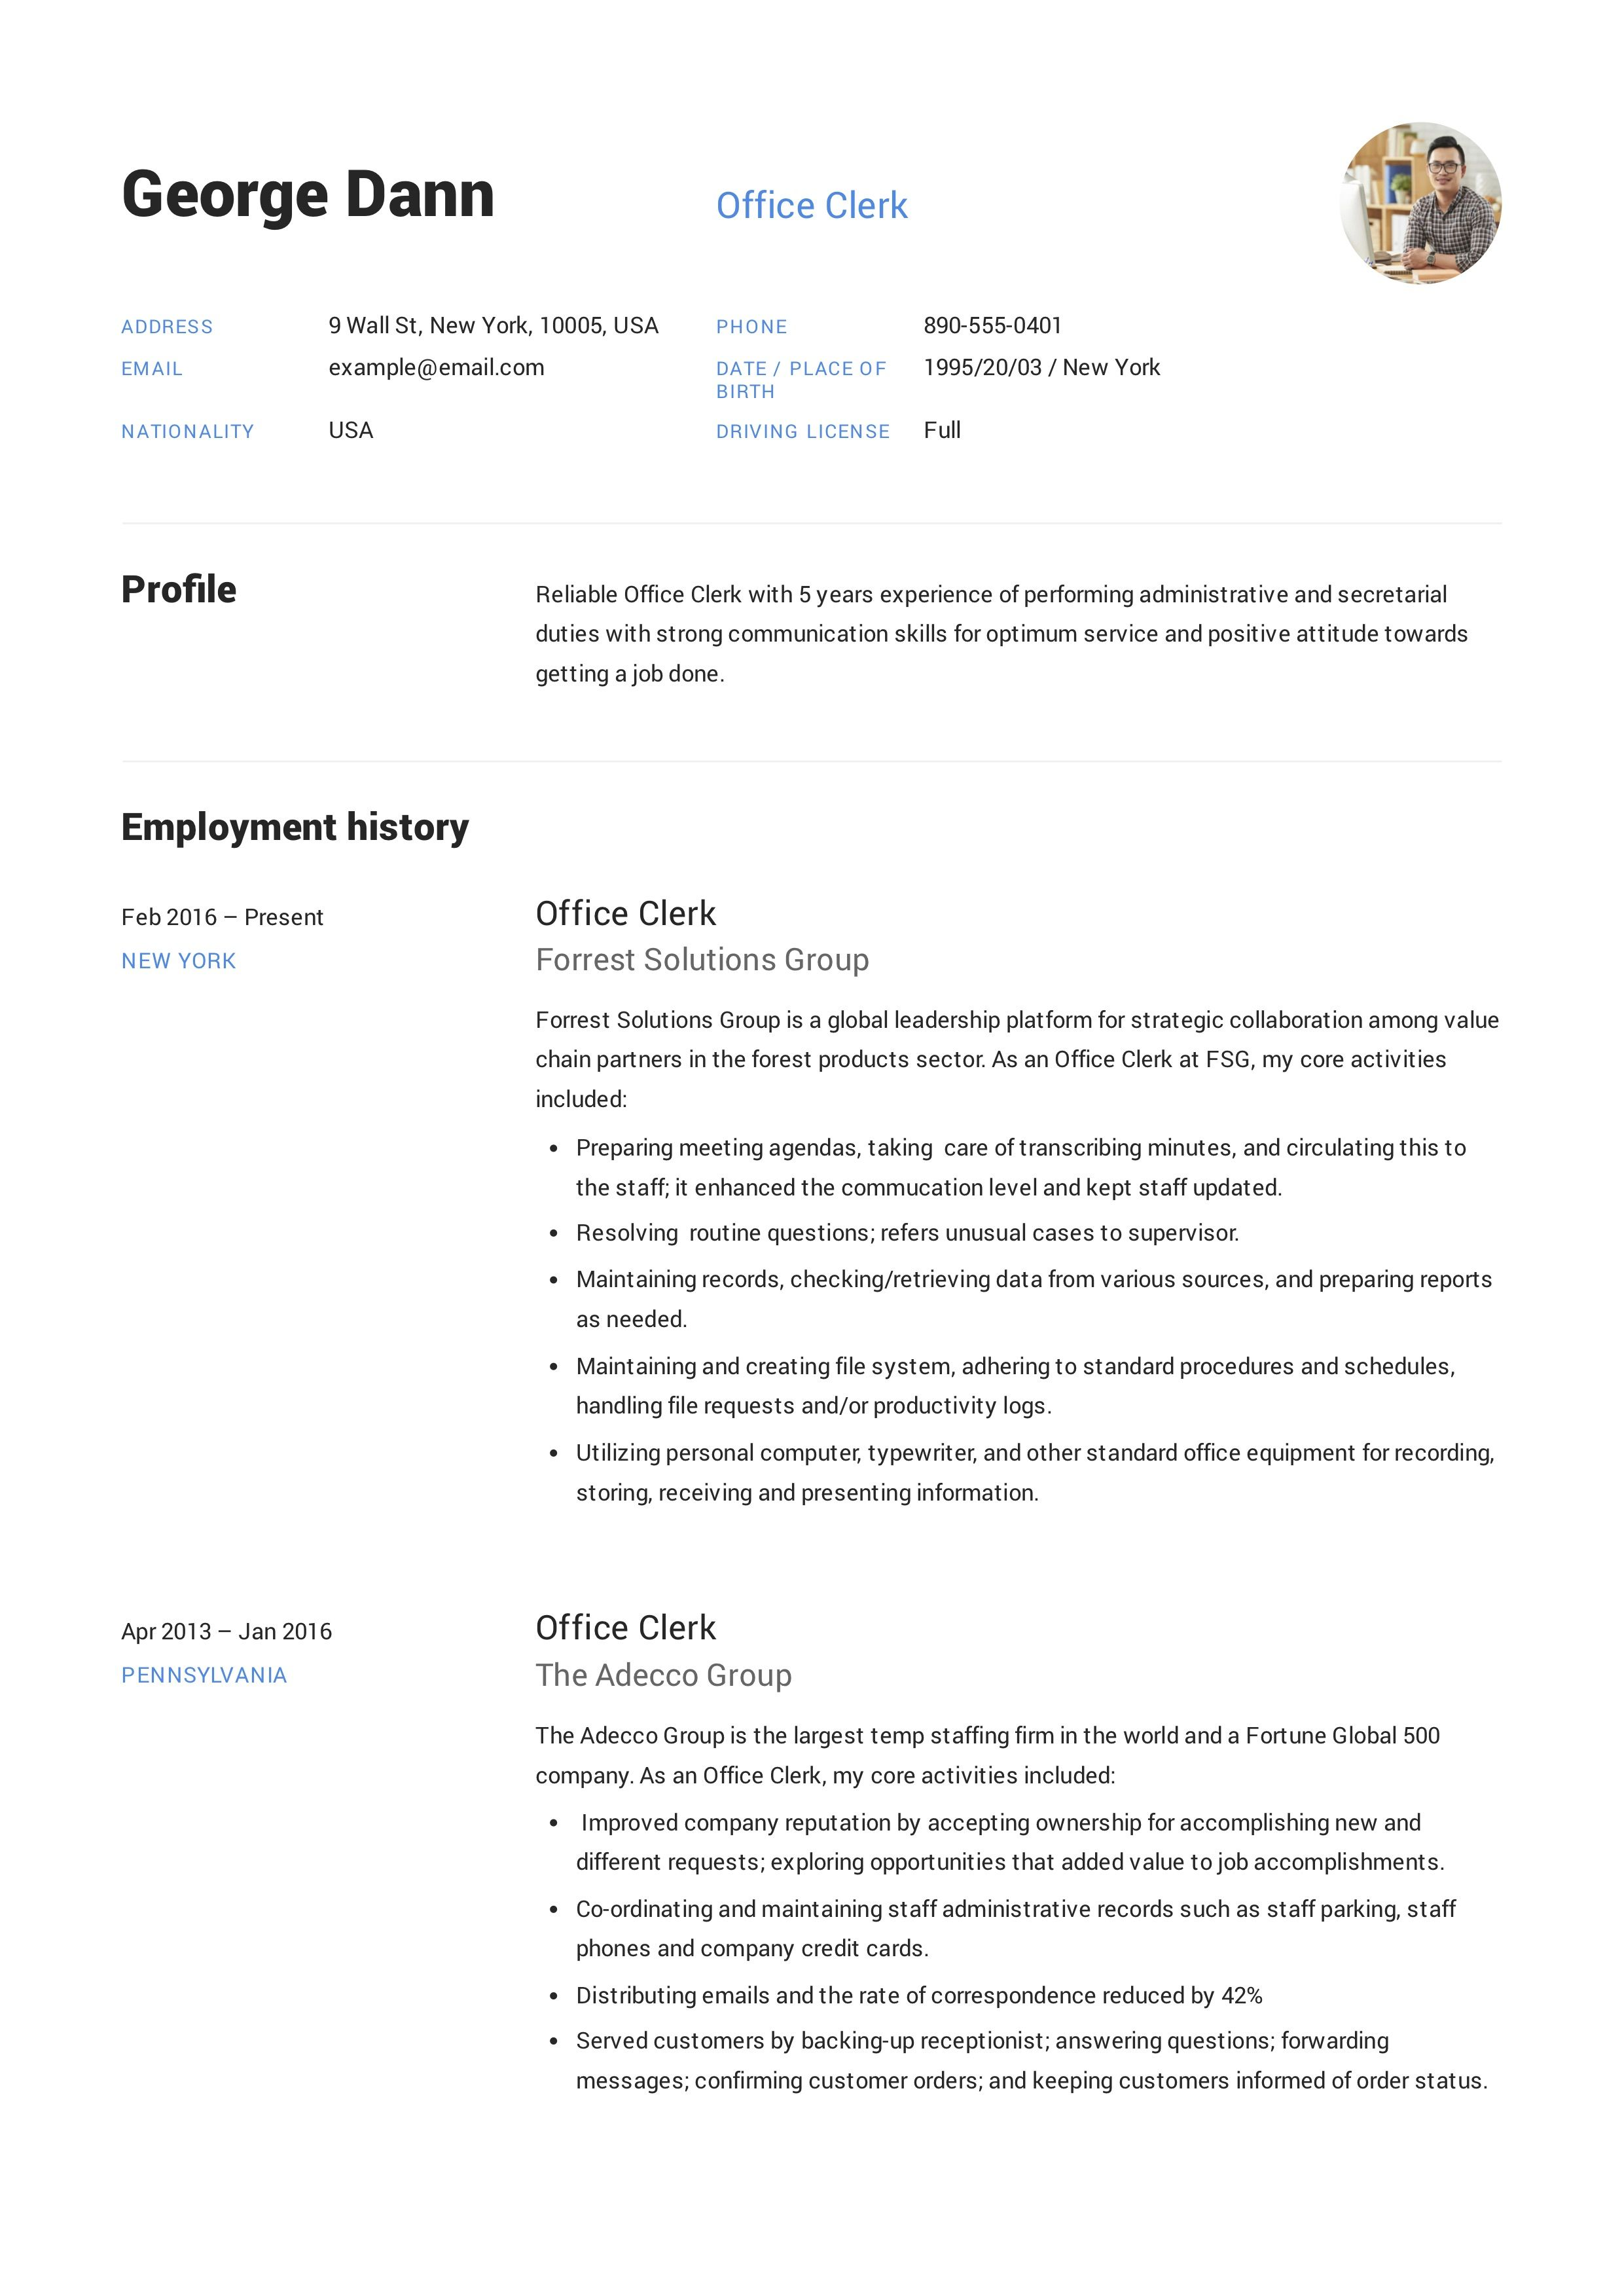 Office Clerk Resume Guide Resume Guide Resume Examples